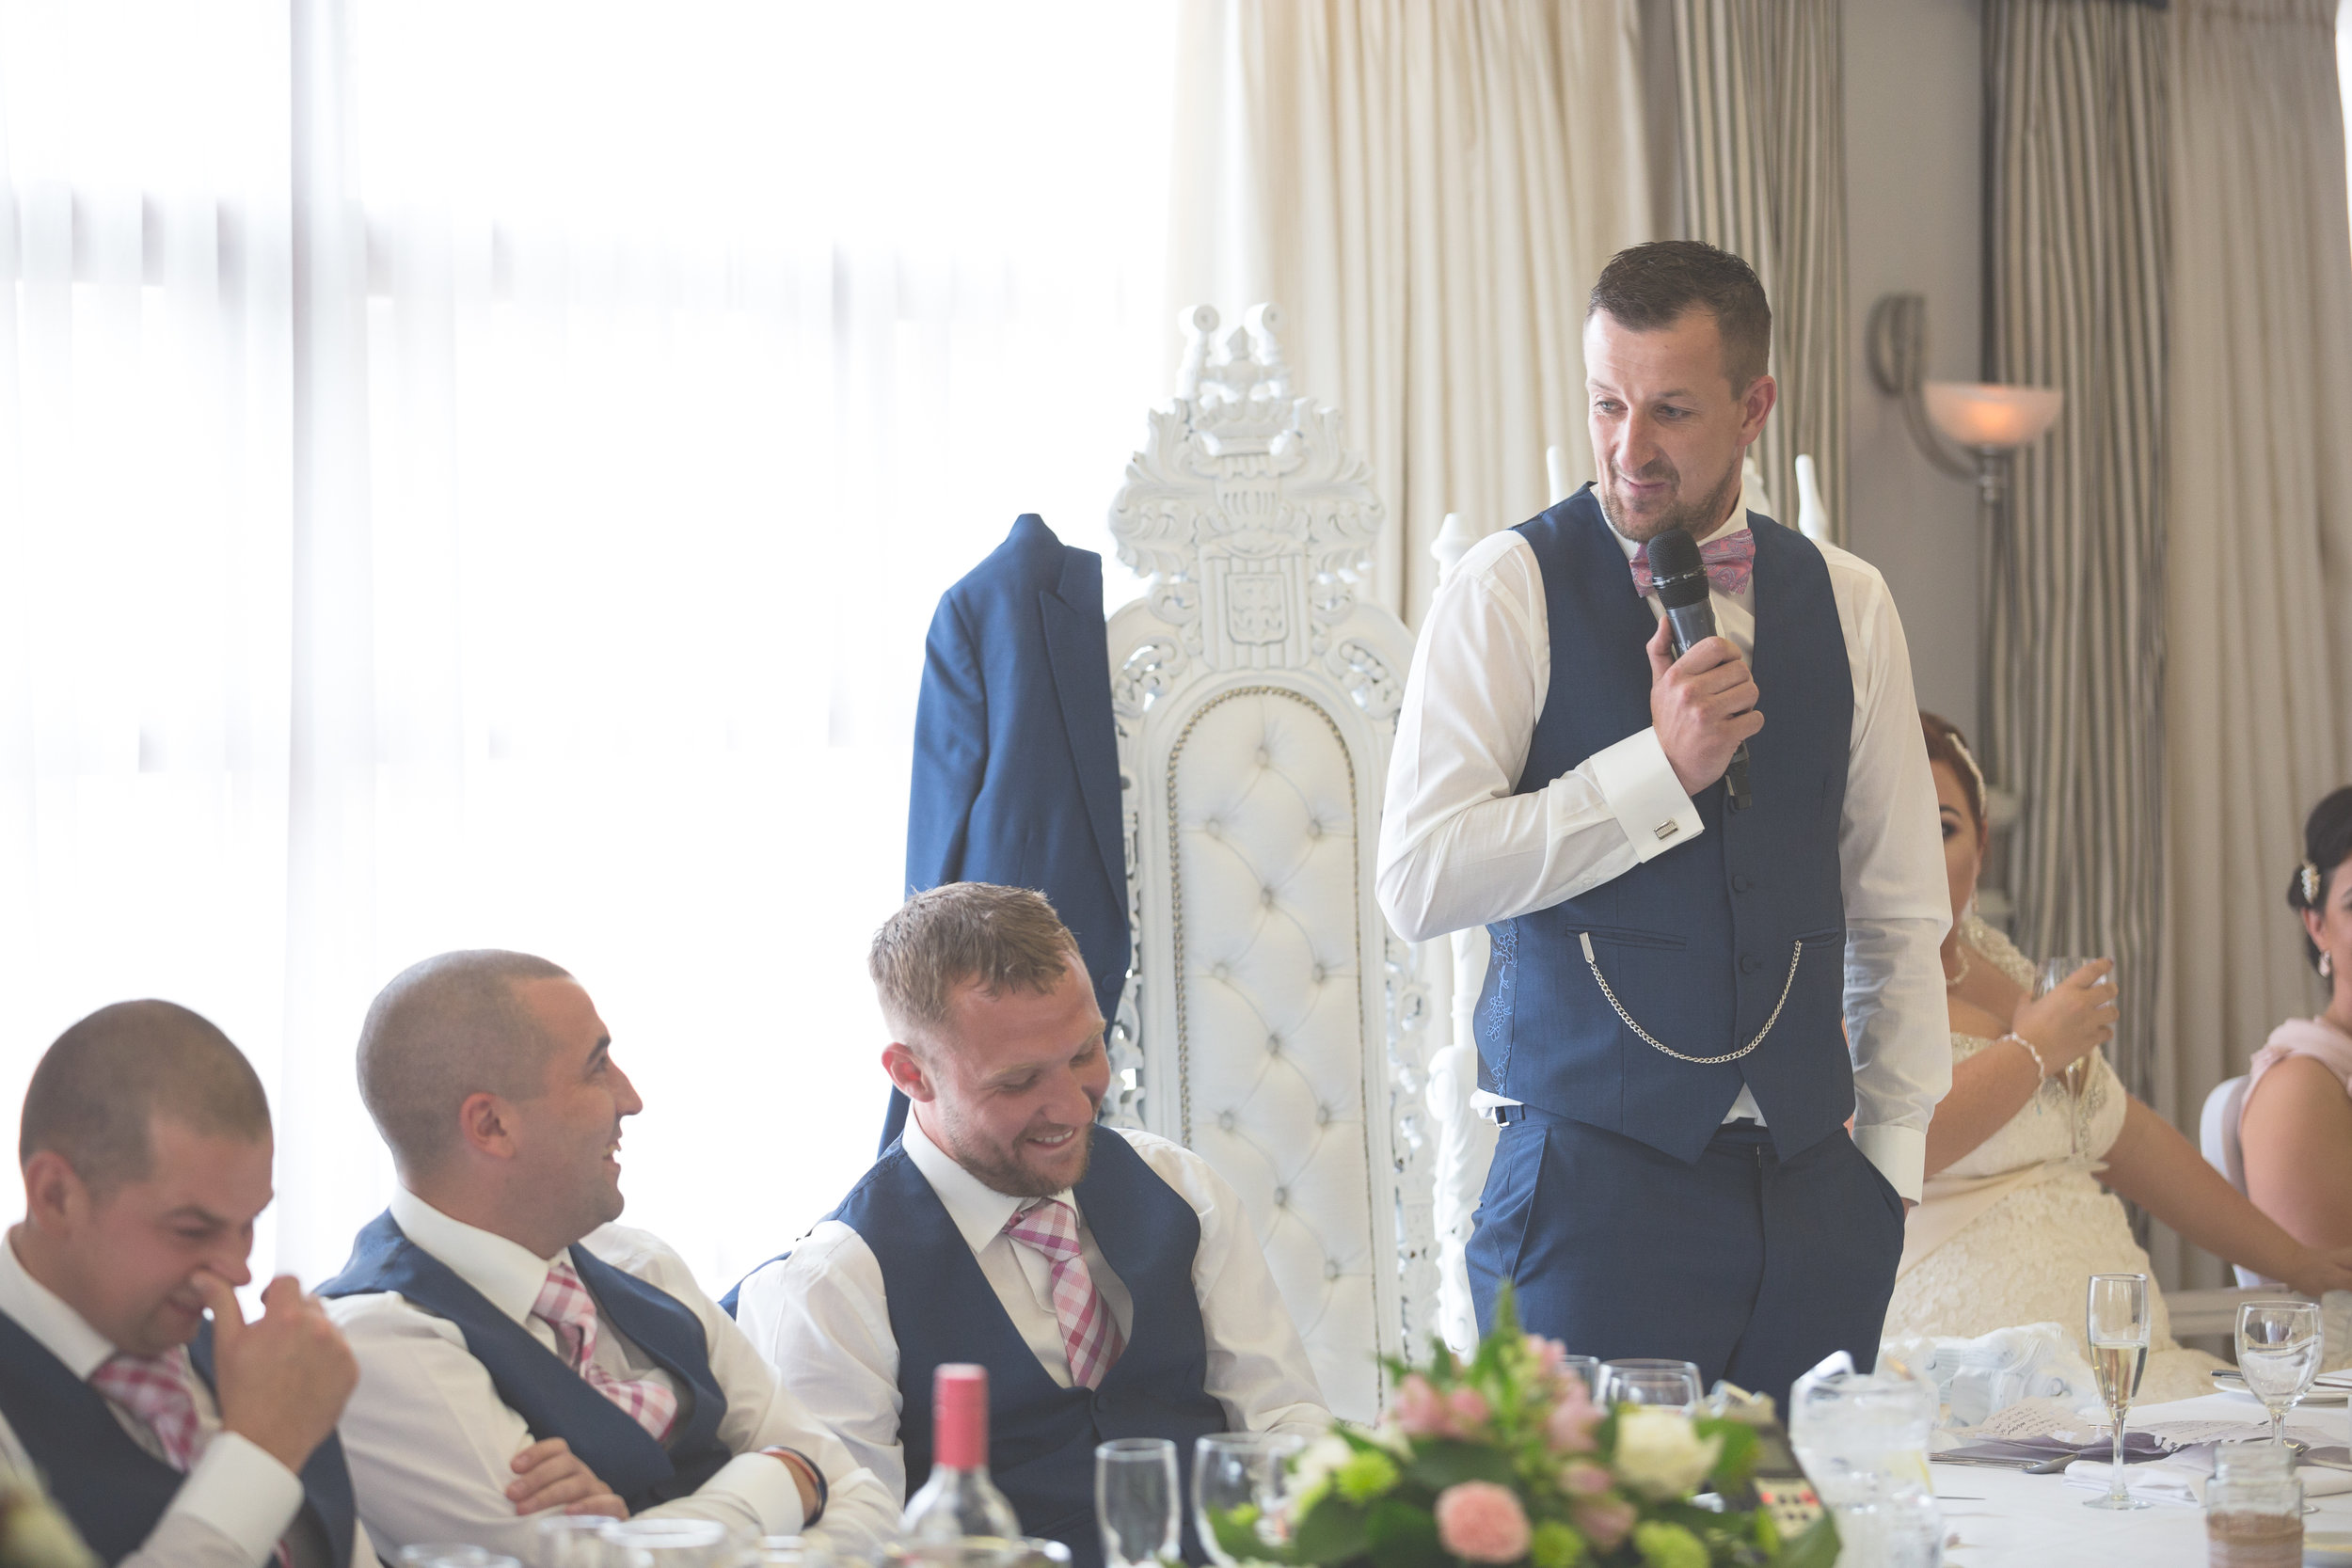 Antoinette & Stephen - Speeches | Brian McEwan Photography | Wedding Photographer Northern Ireland 77.jpg